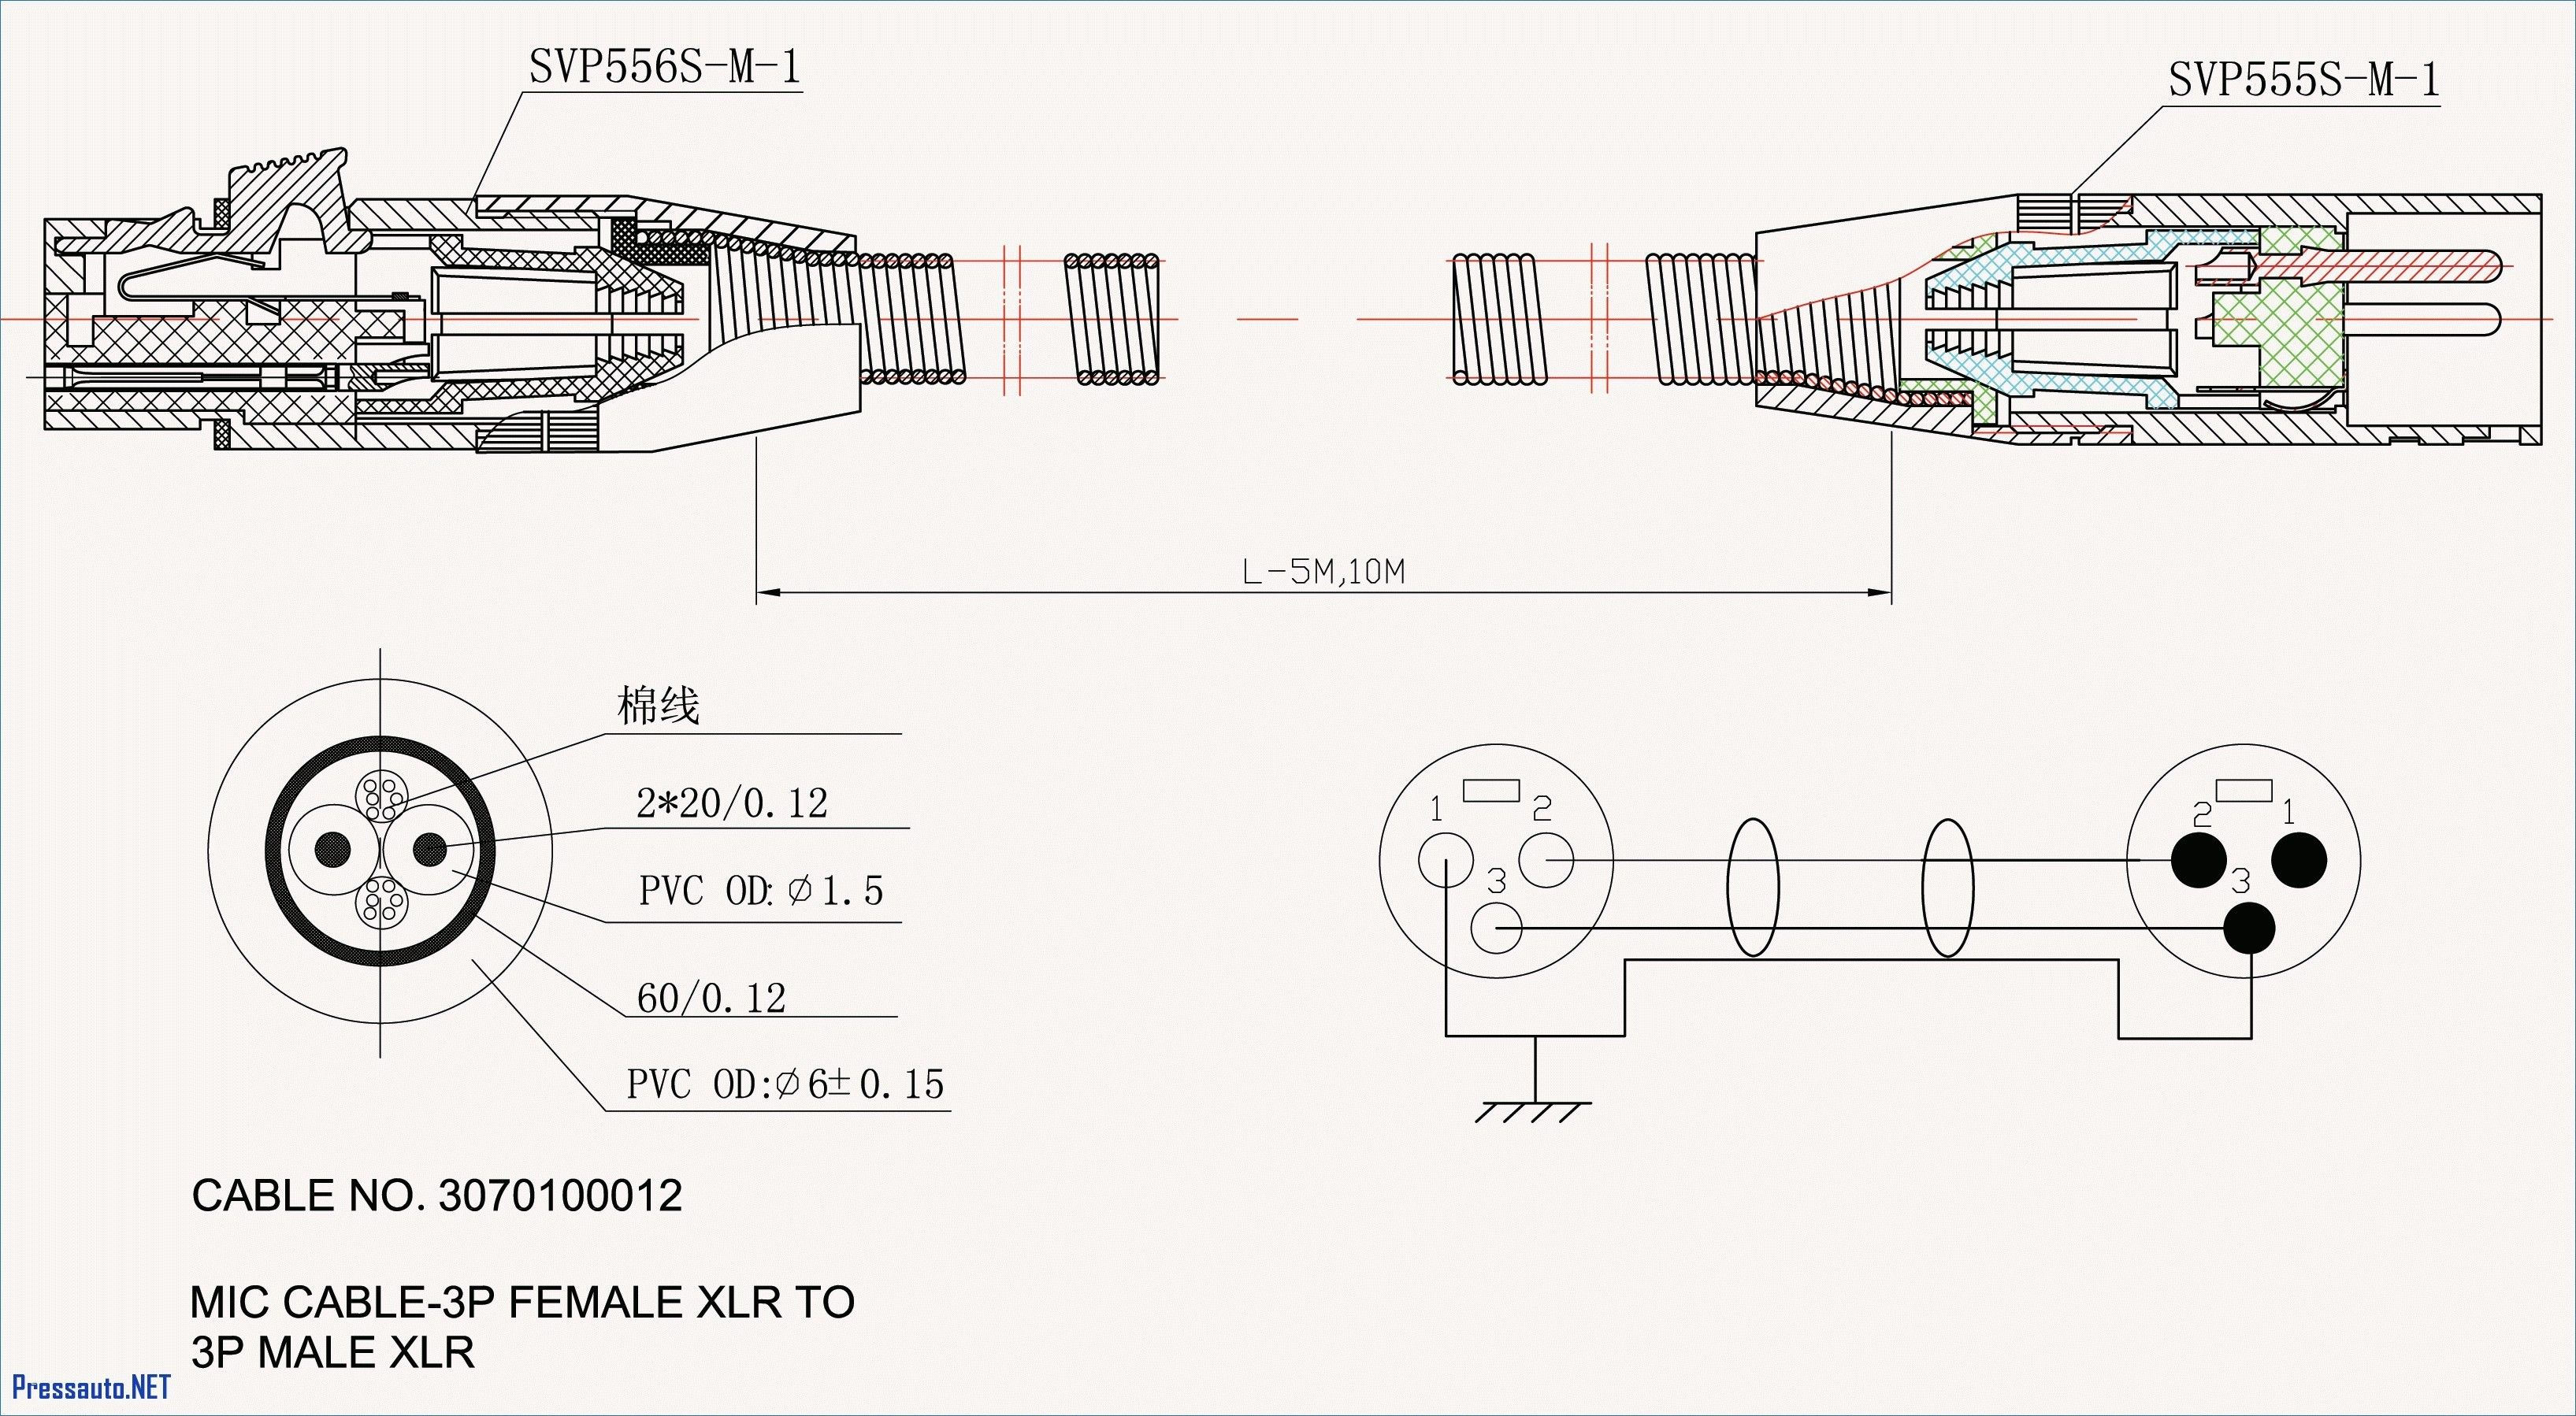 Inspirational 6 Pin Trailer Connector Wiring Diagram In 2020 Electrical Wiring Diagram Trailer Light Wiring Trailer Wiring Diagram